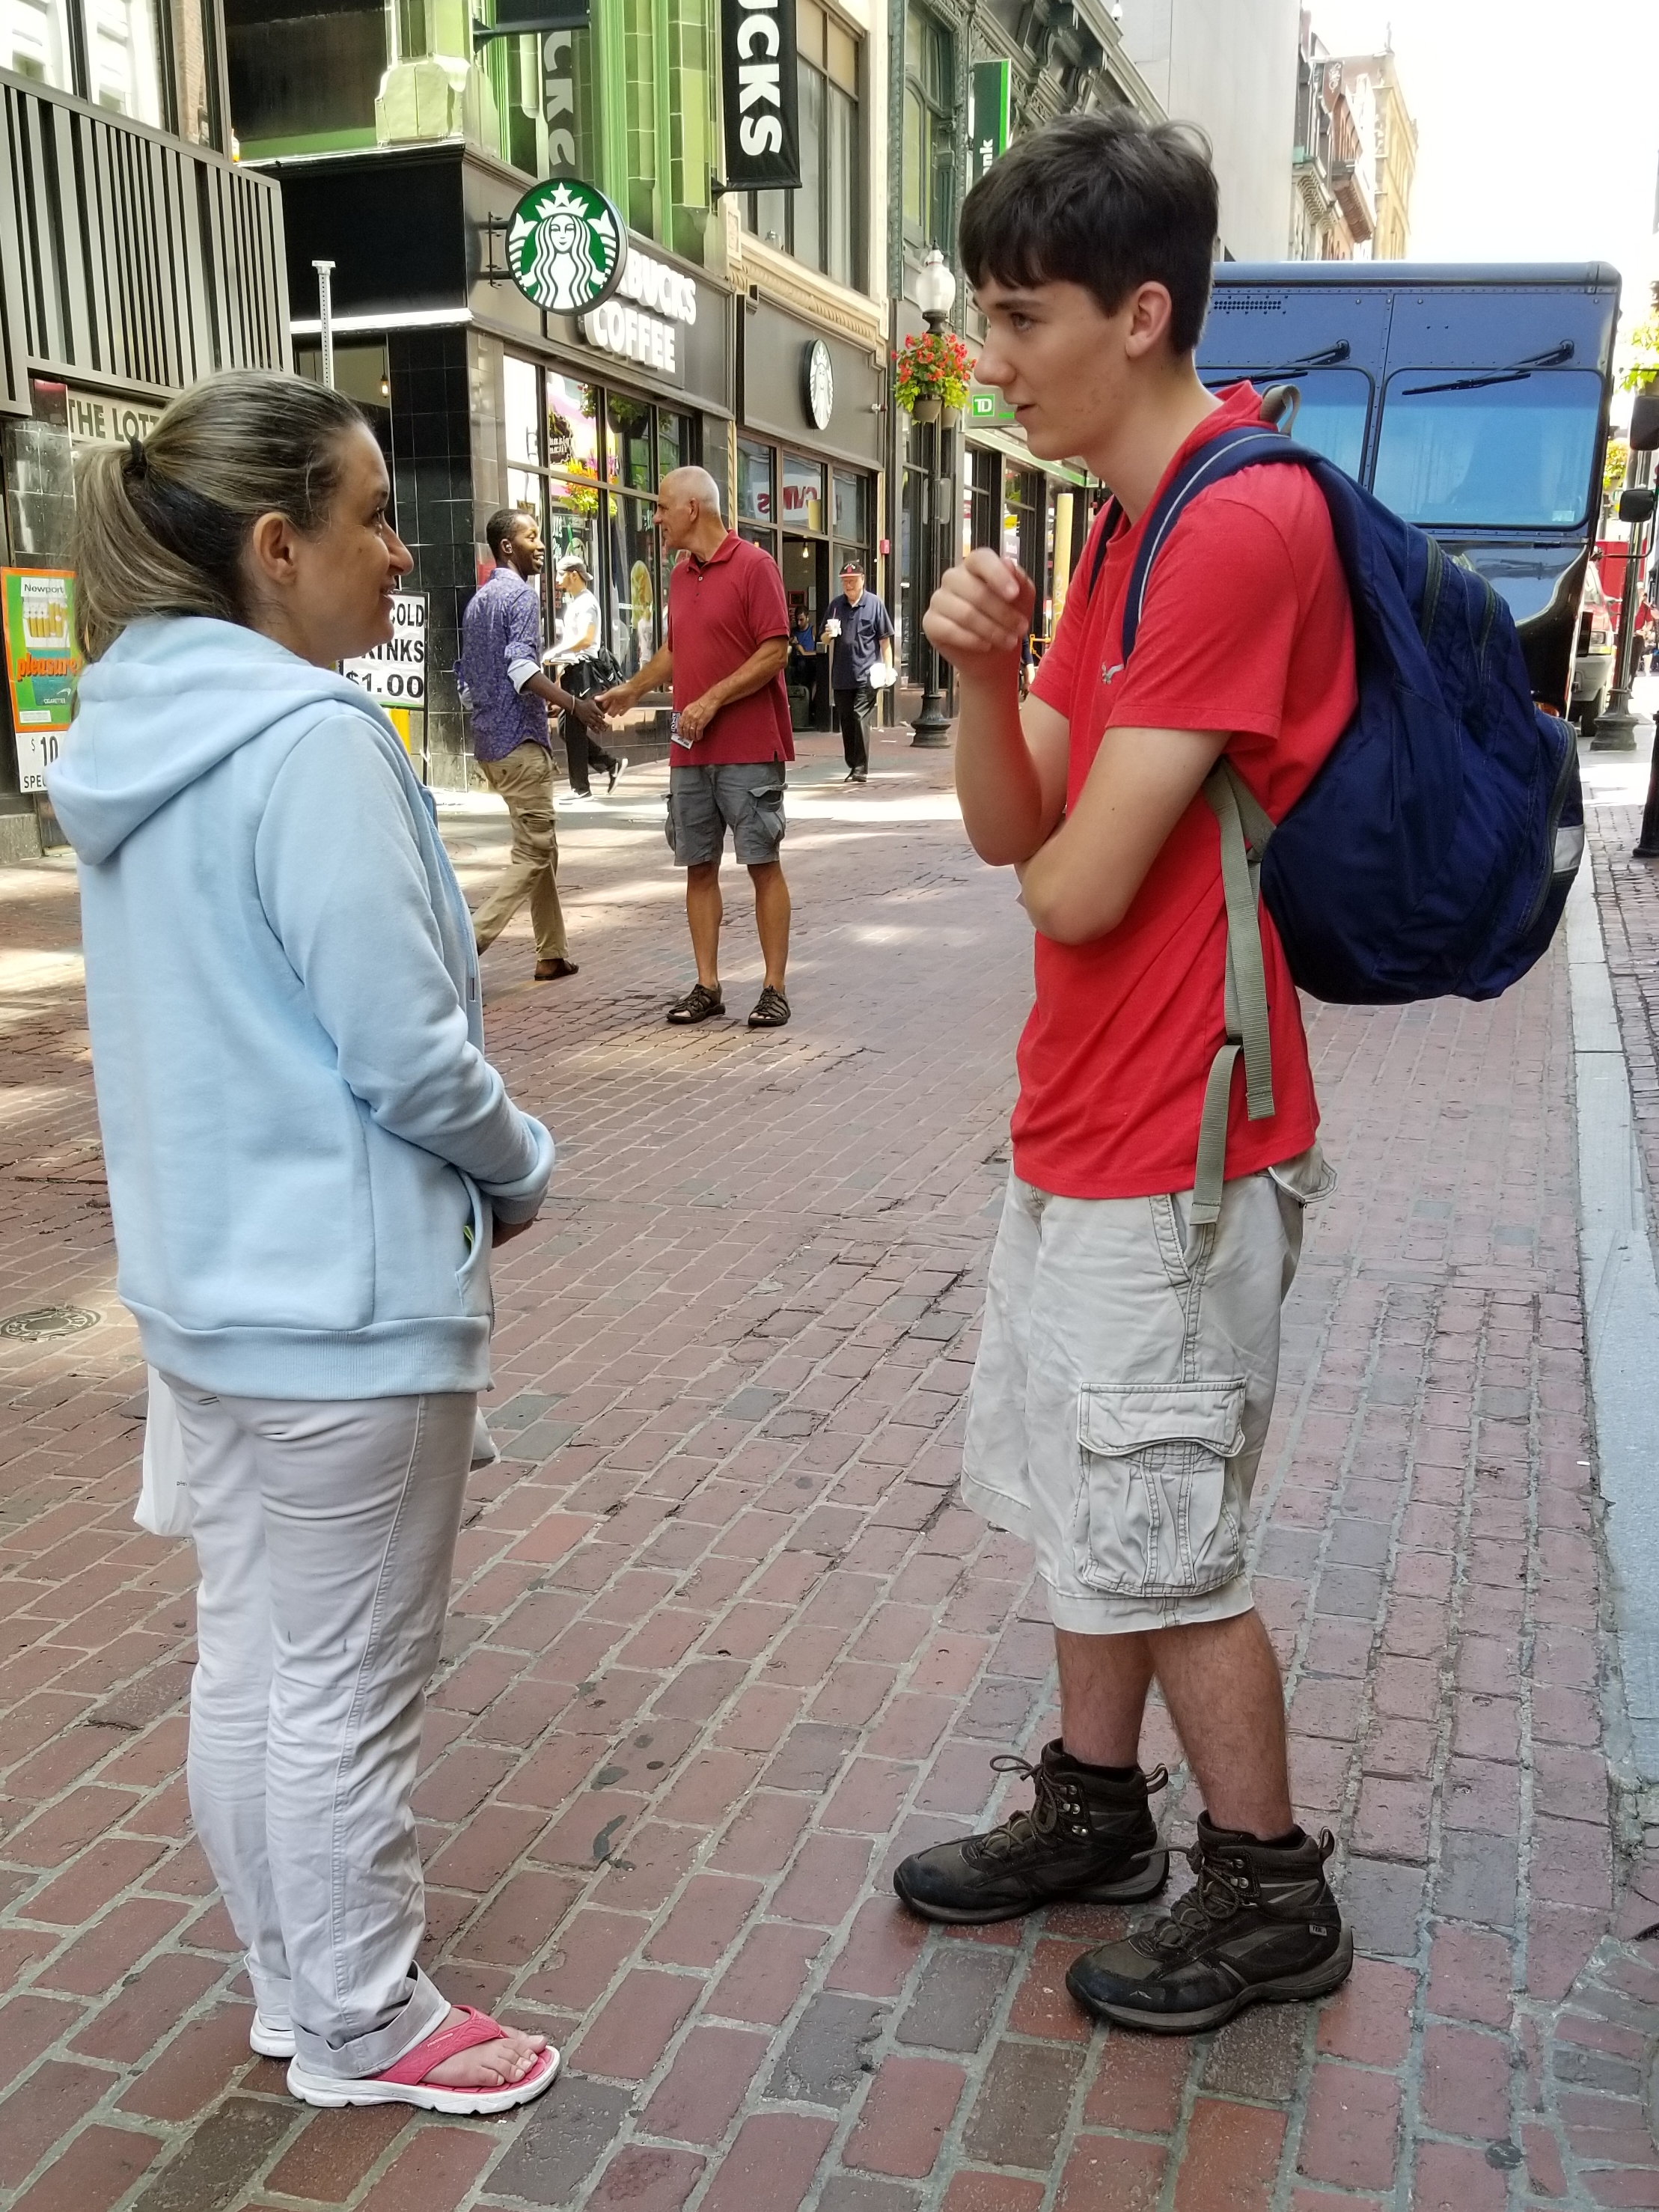 Spencer was fearless talking with strangers about Jesus. He was a true encouragement!